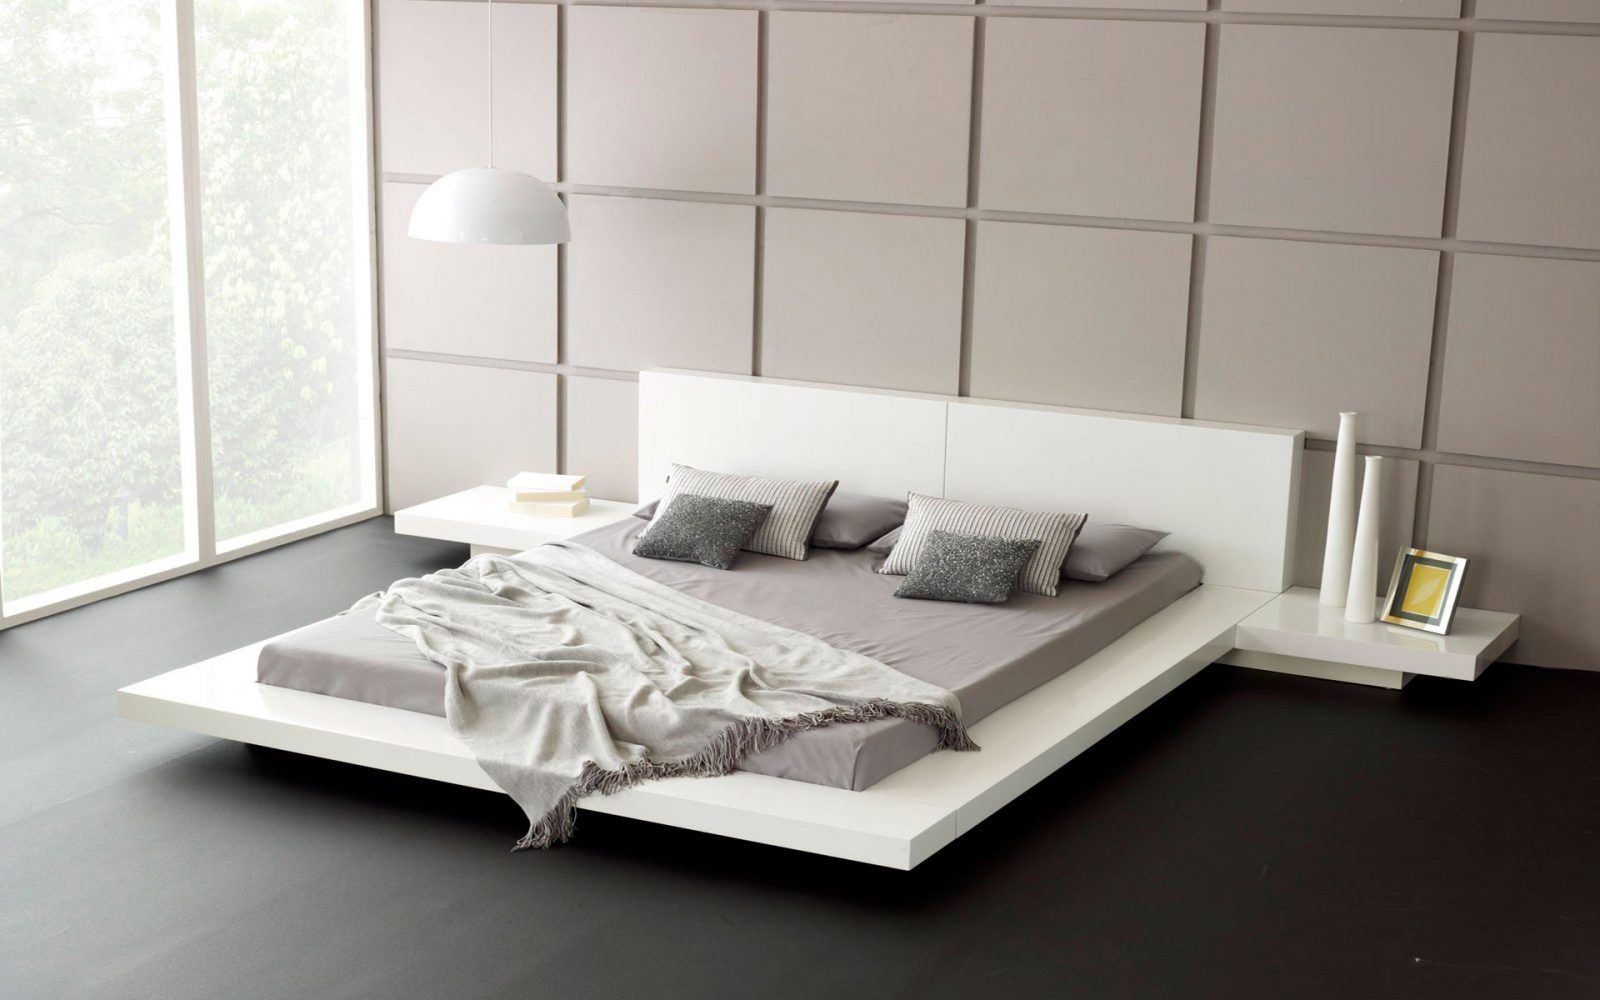 King Size Bed Comes With A Good Night Sleep - Having a good night sleep is  what we need every day. There are a variety of king size beds with  different ...